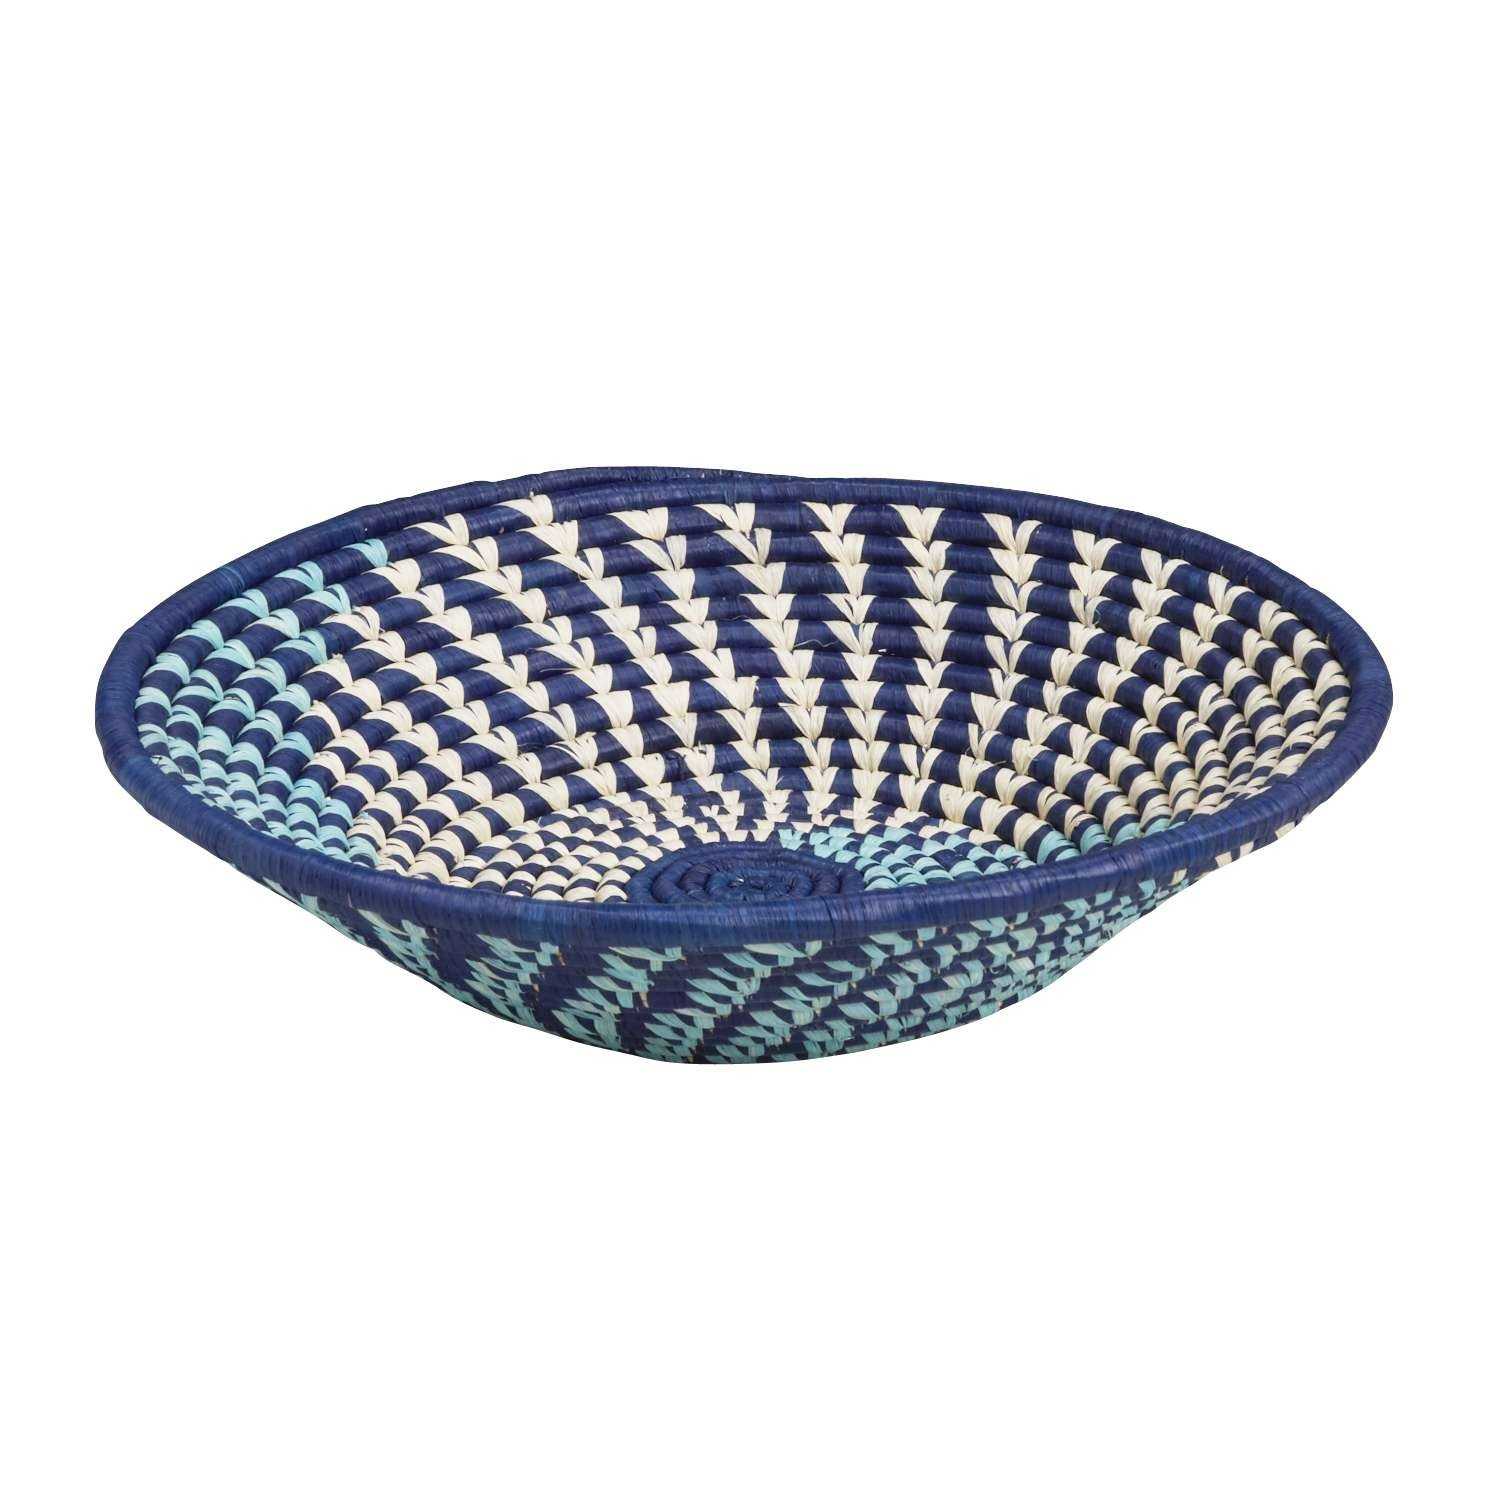 Blue and white woven Uganda bowl